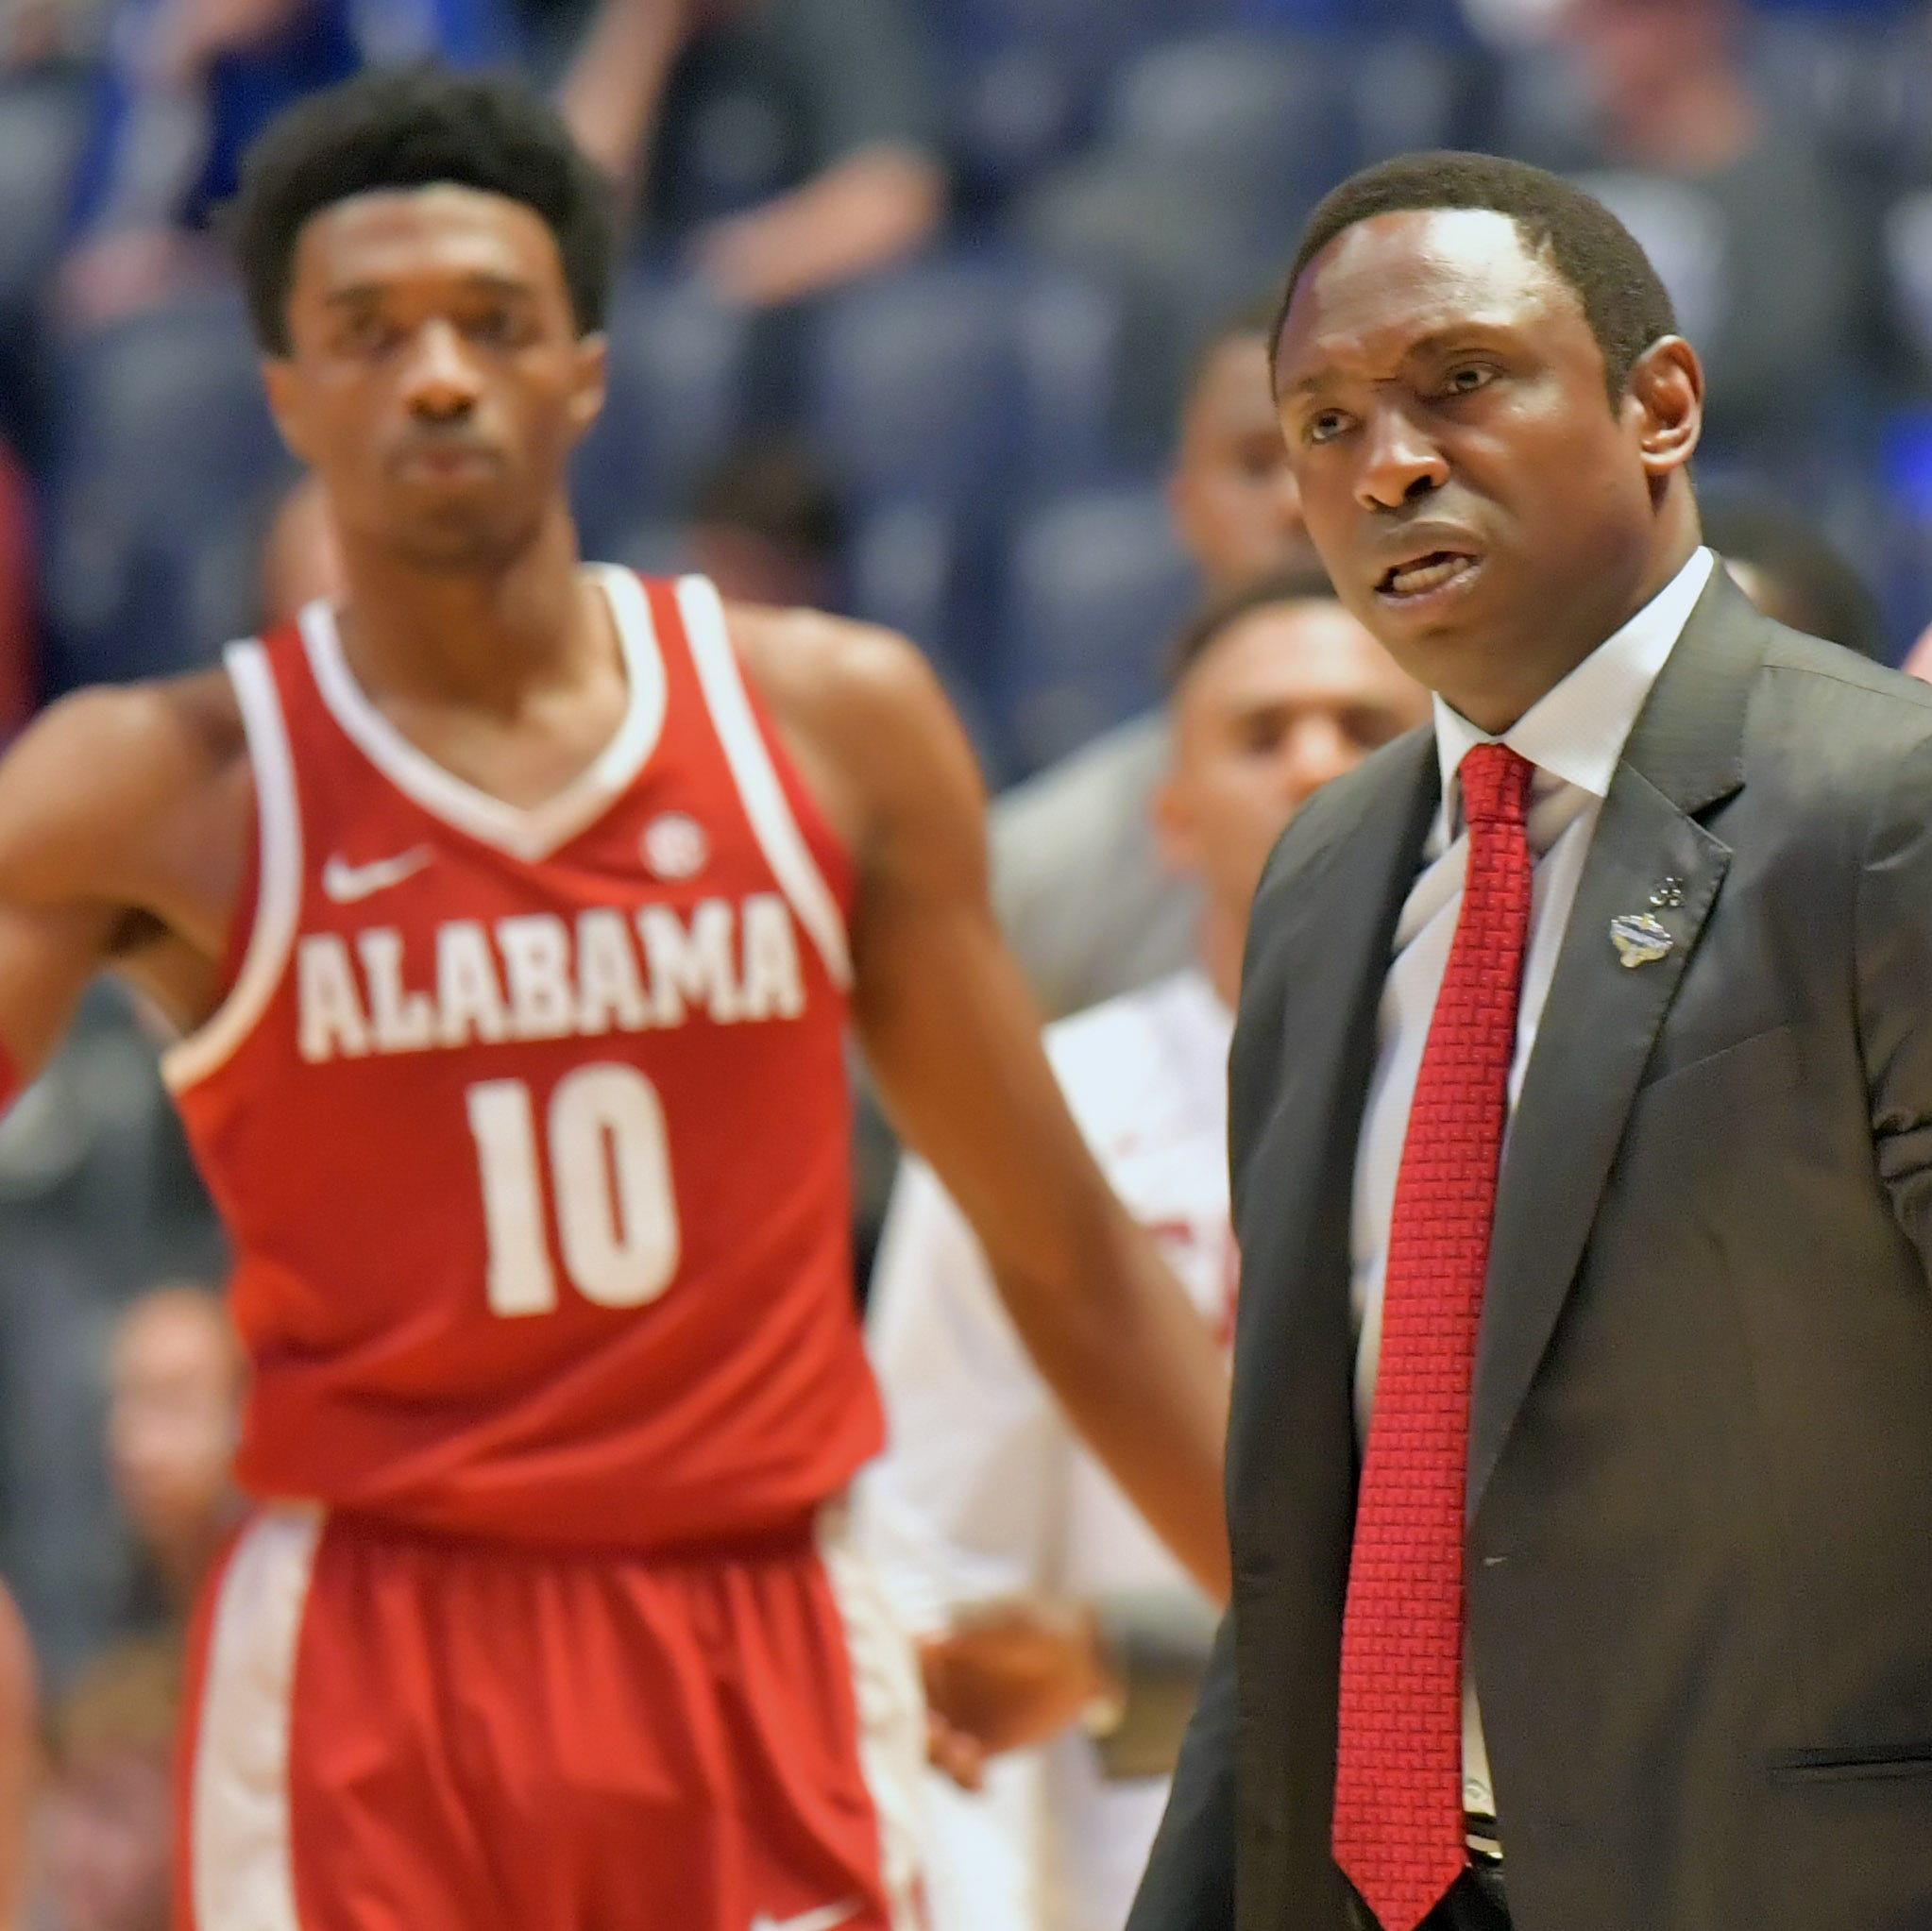 Alabama draws No. 1 seed in NIT after missing NCAA Tournament field